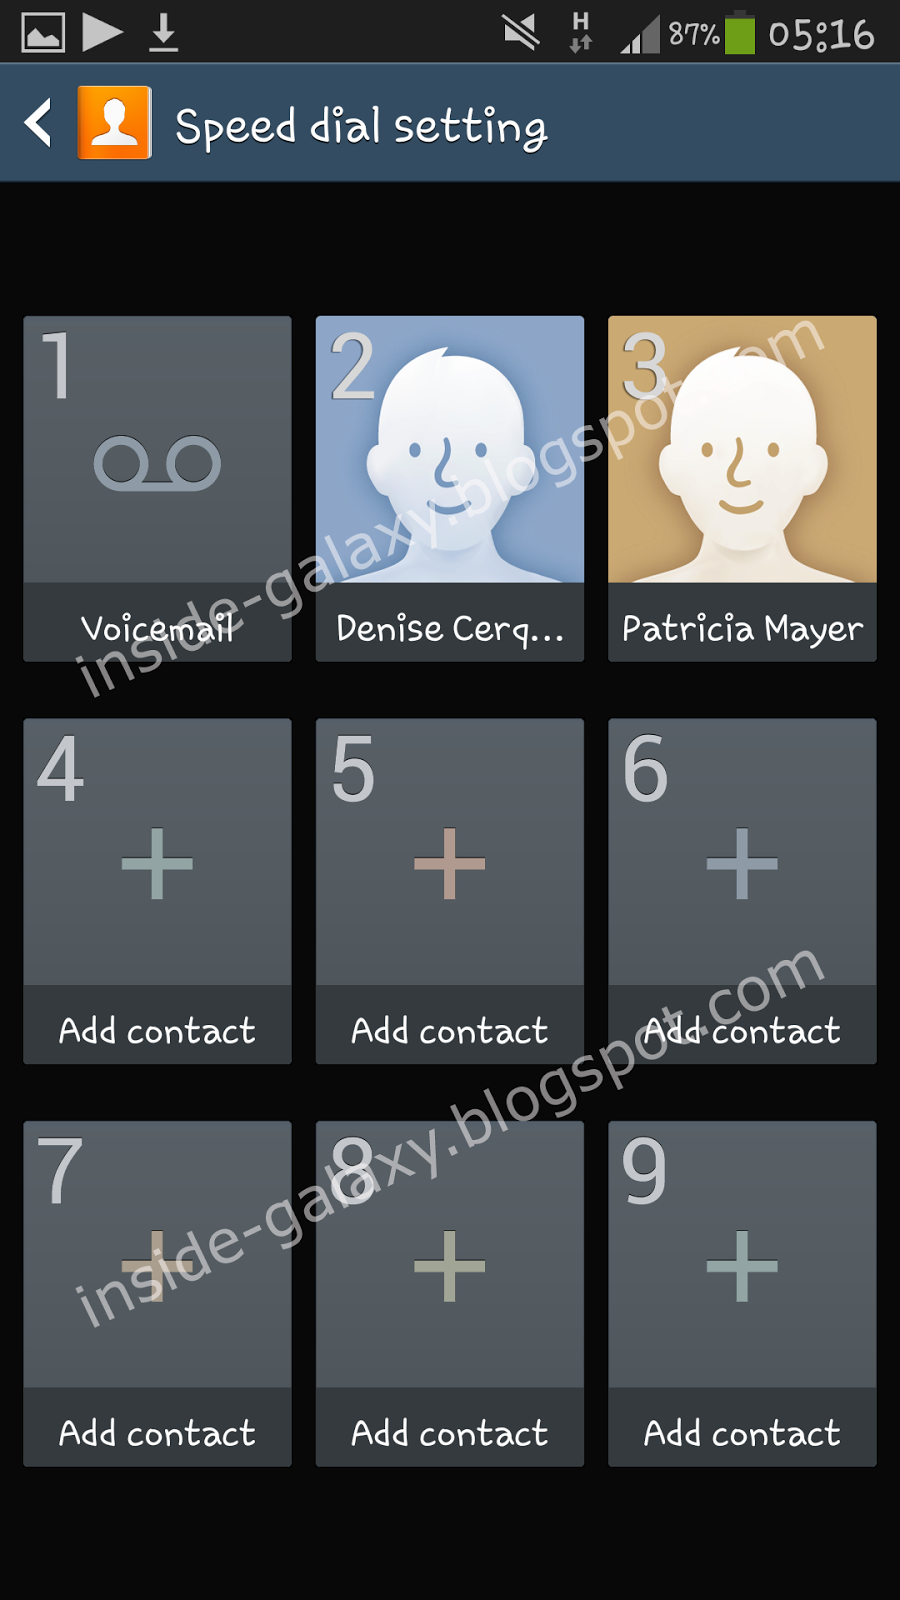 How to assign a contact to a speed dial key?